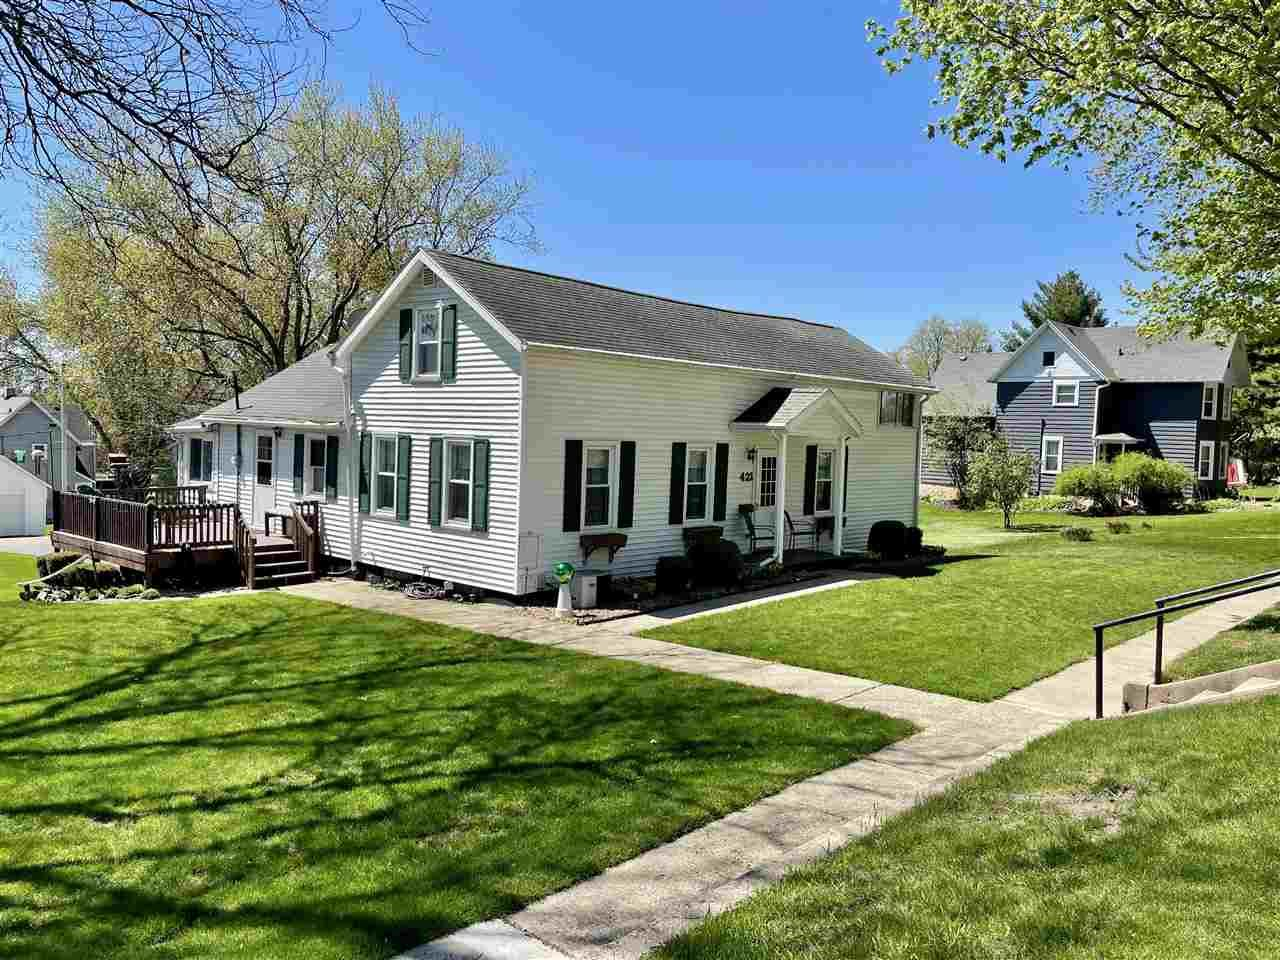 421 Columbia Ave, De Forest, WI 53532 - #: 1907844